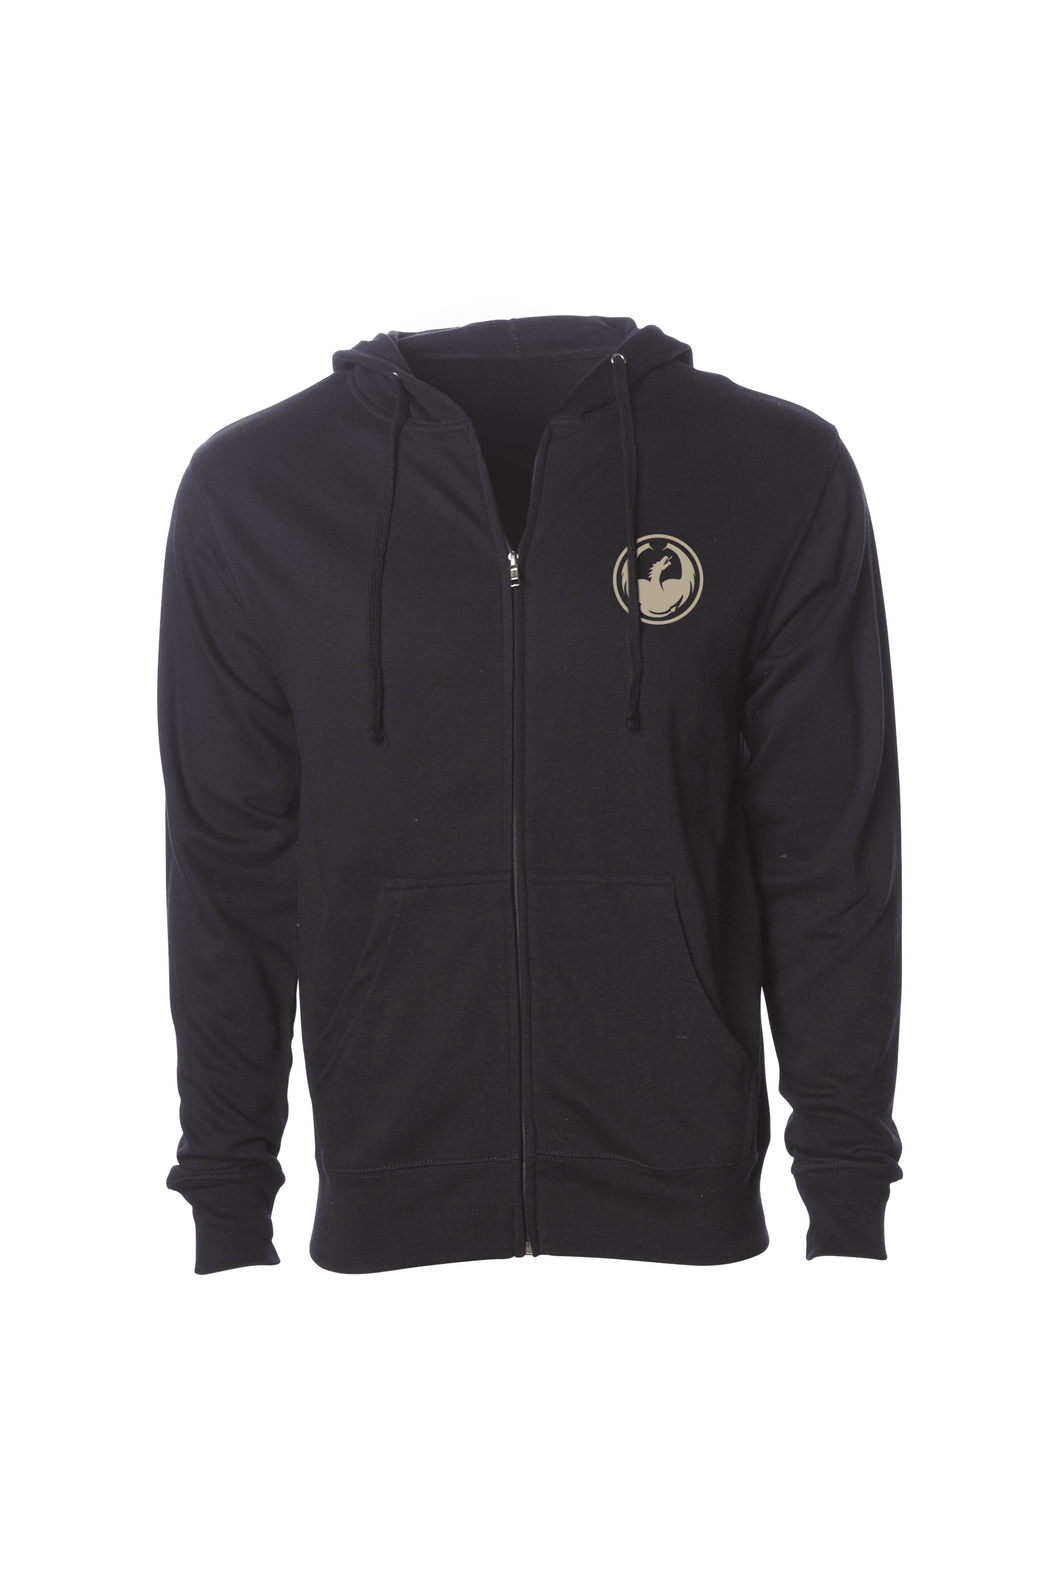 BAND TOGETHER FULL ZIP HOODIE F16 Black